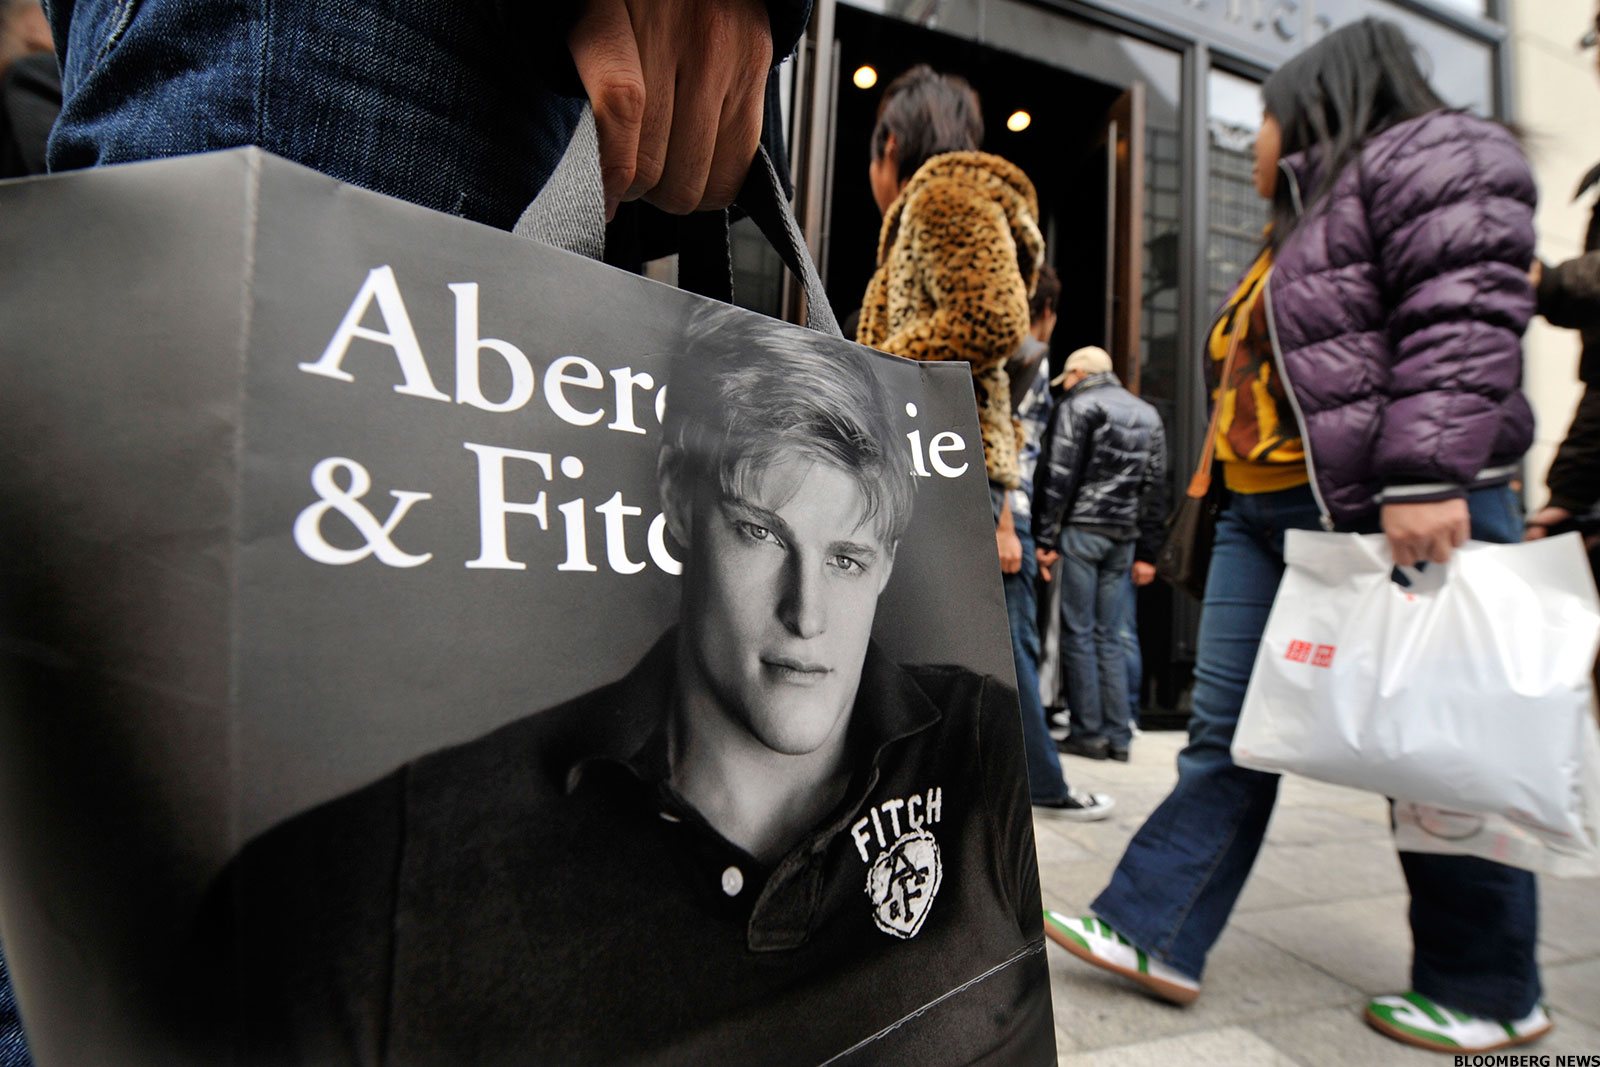 Abercrombie & Fitch (ANF) Stock Tumbles, Stifel: Q2 Loss Driven By Softer Sales - TheStreet